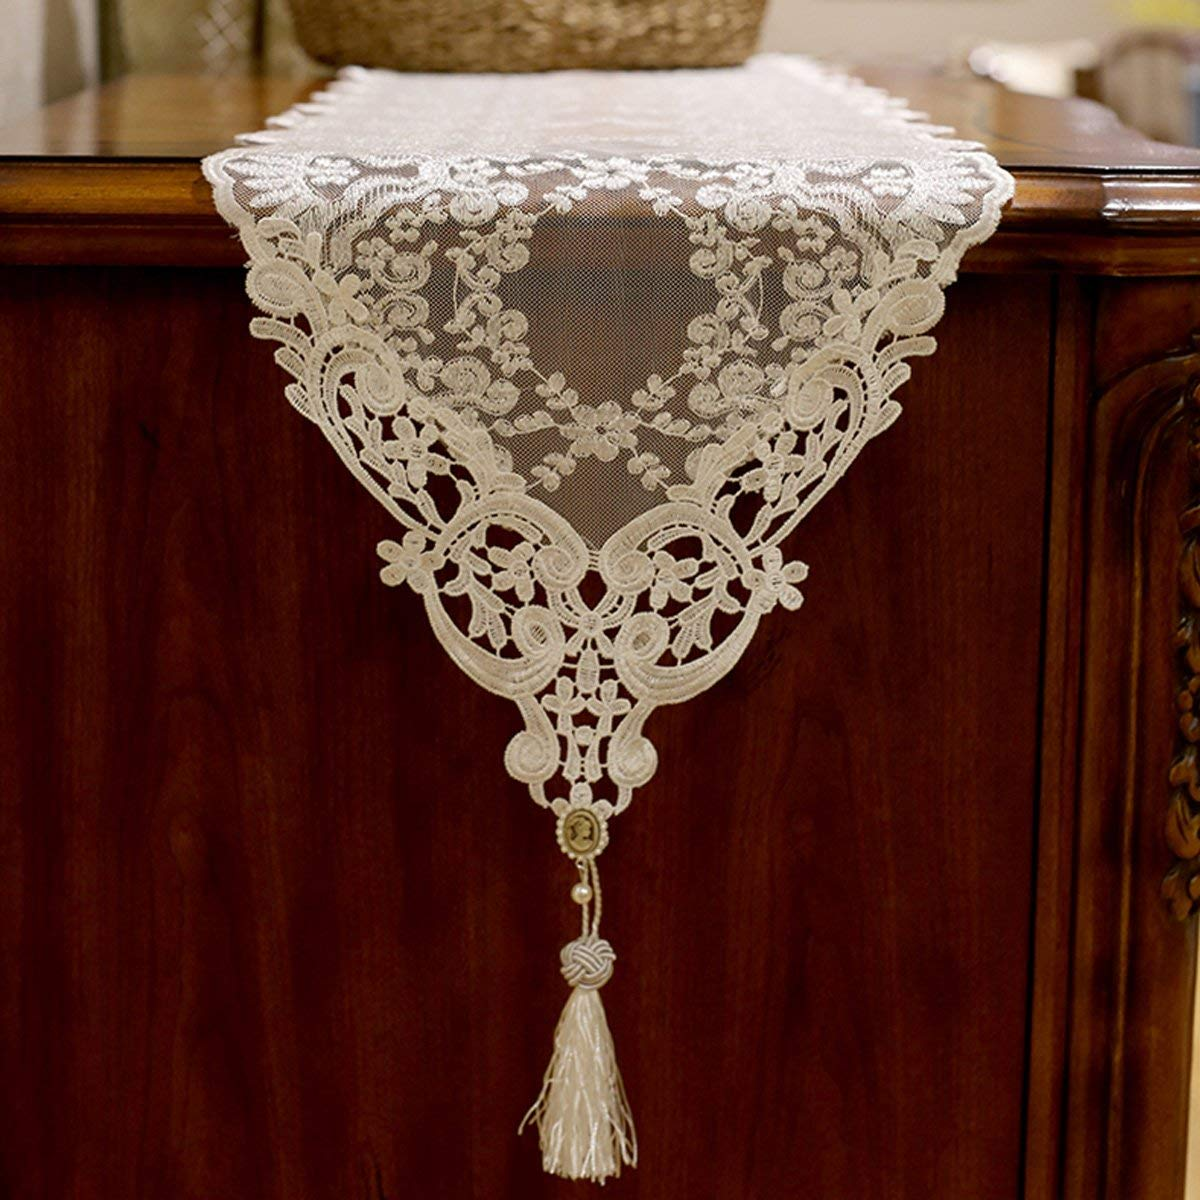 """Premium Gold Lace Table Runner Hollow Embroidery Table Cloth with Tassel Pendant for Kitchen Dining Wedding (48""""L, Gold)"""